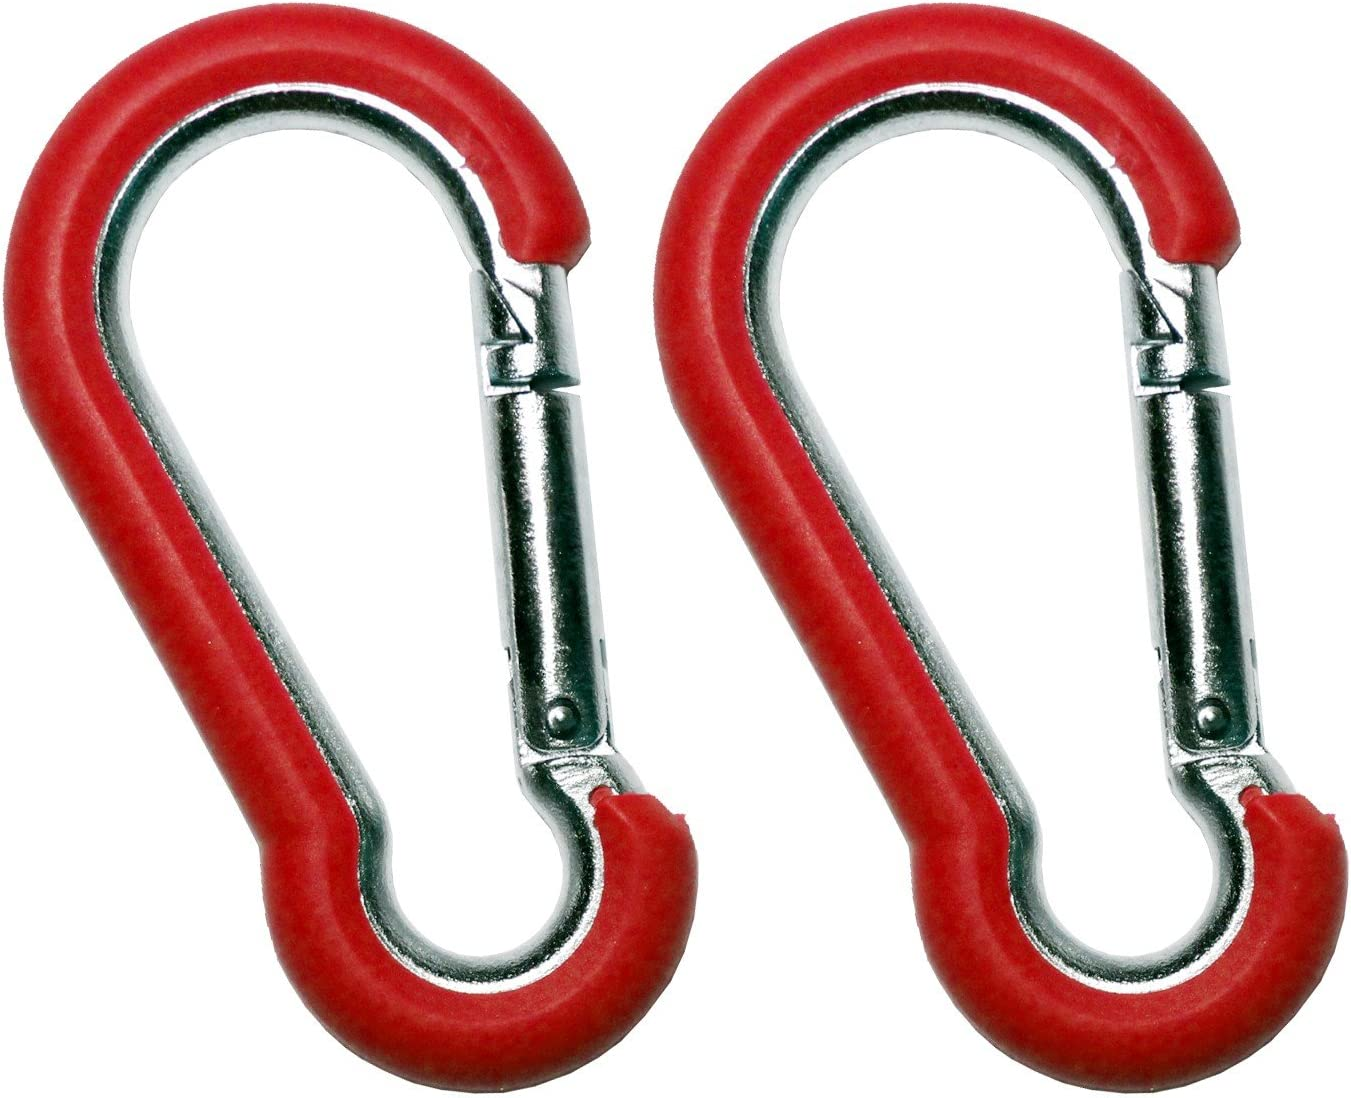 Hook It Clips - Rubber Coated Stainless Steel Carabiner -